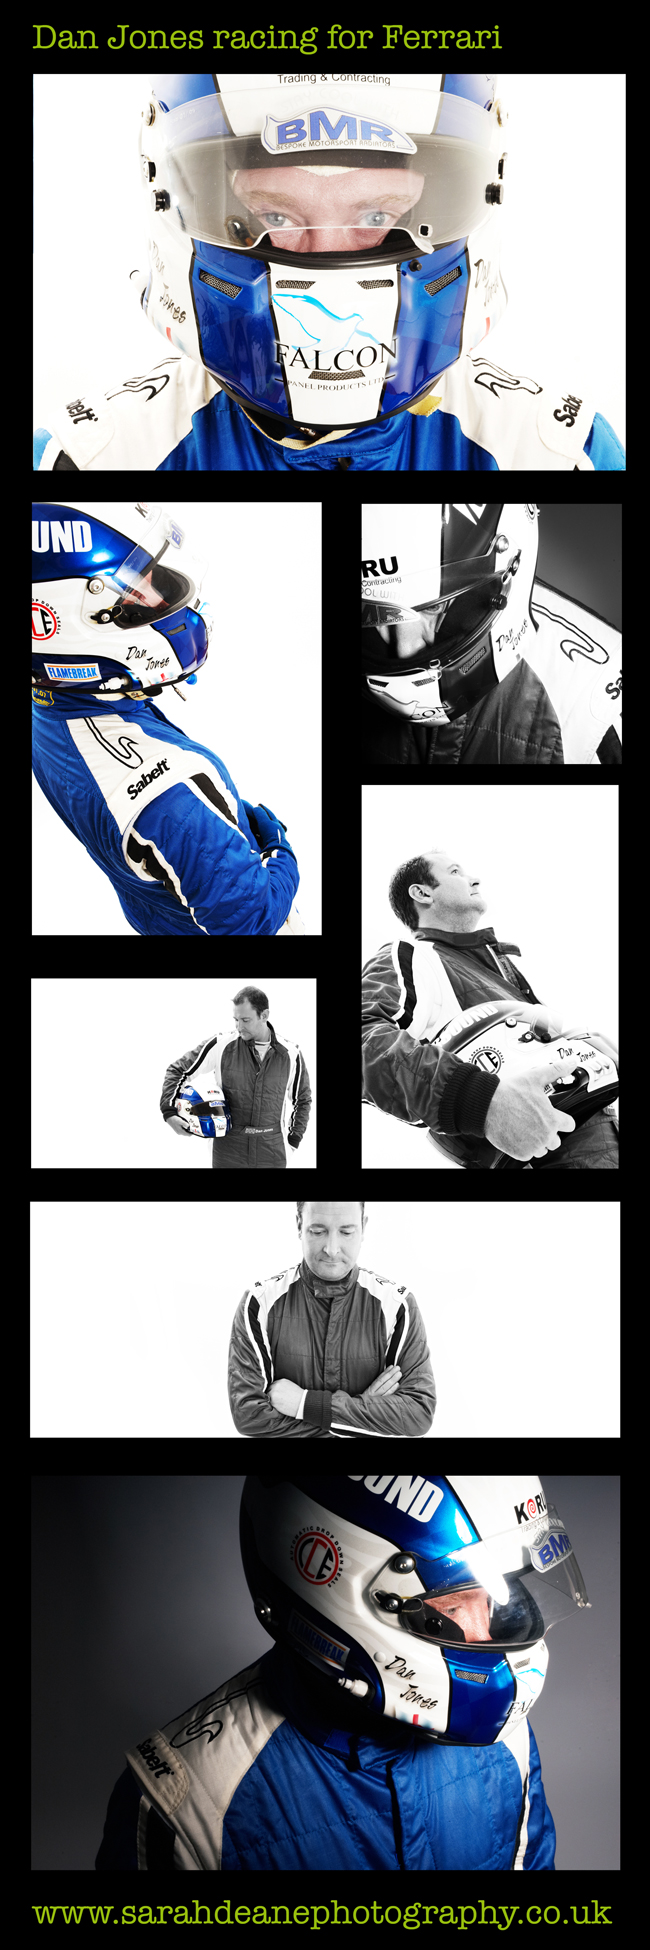 Ferrari racer portrait photography